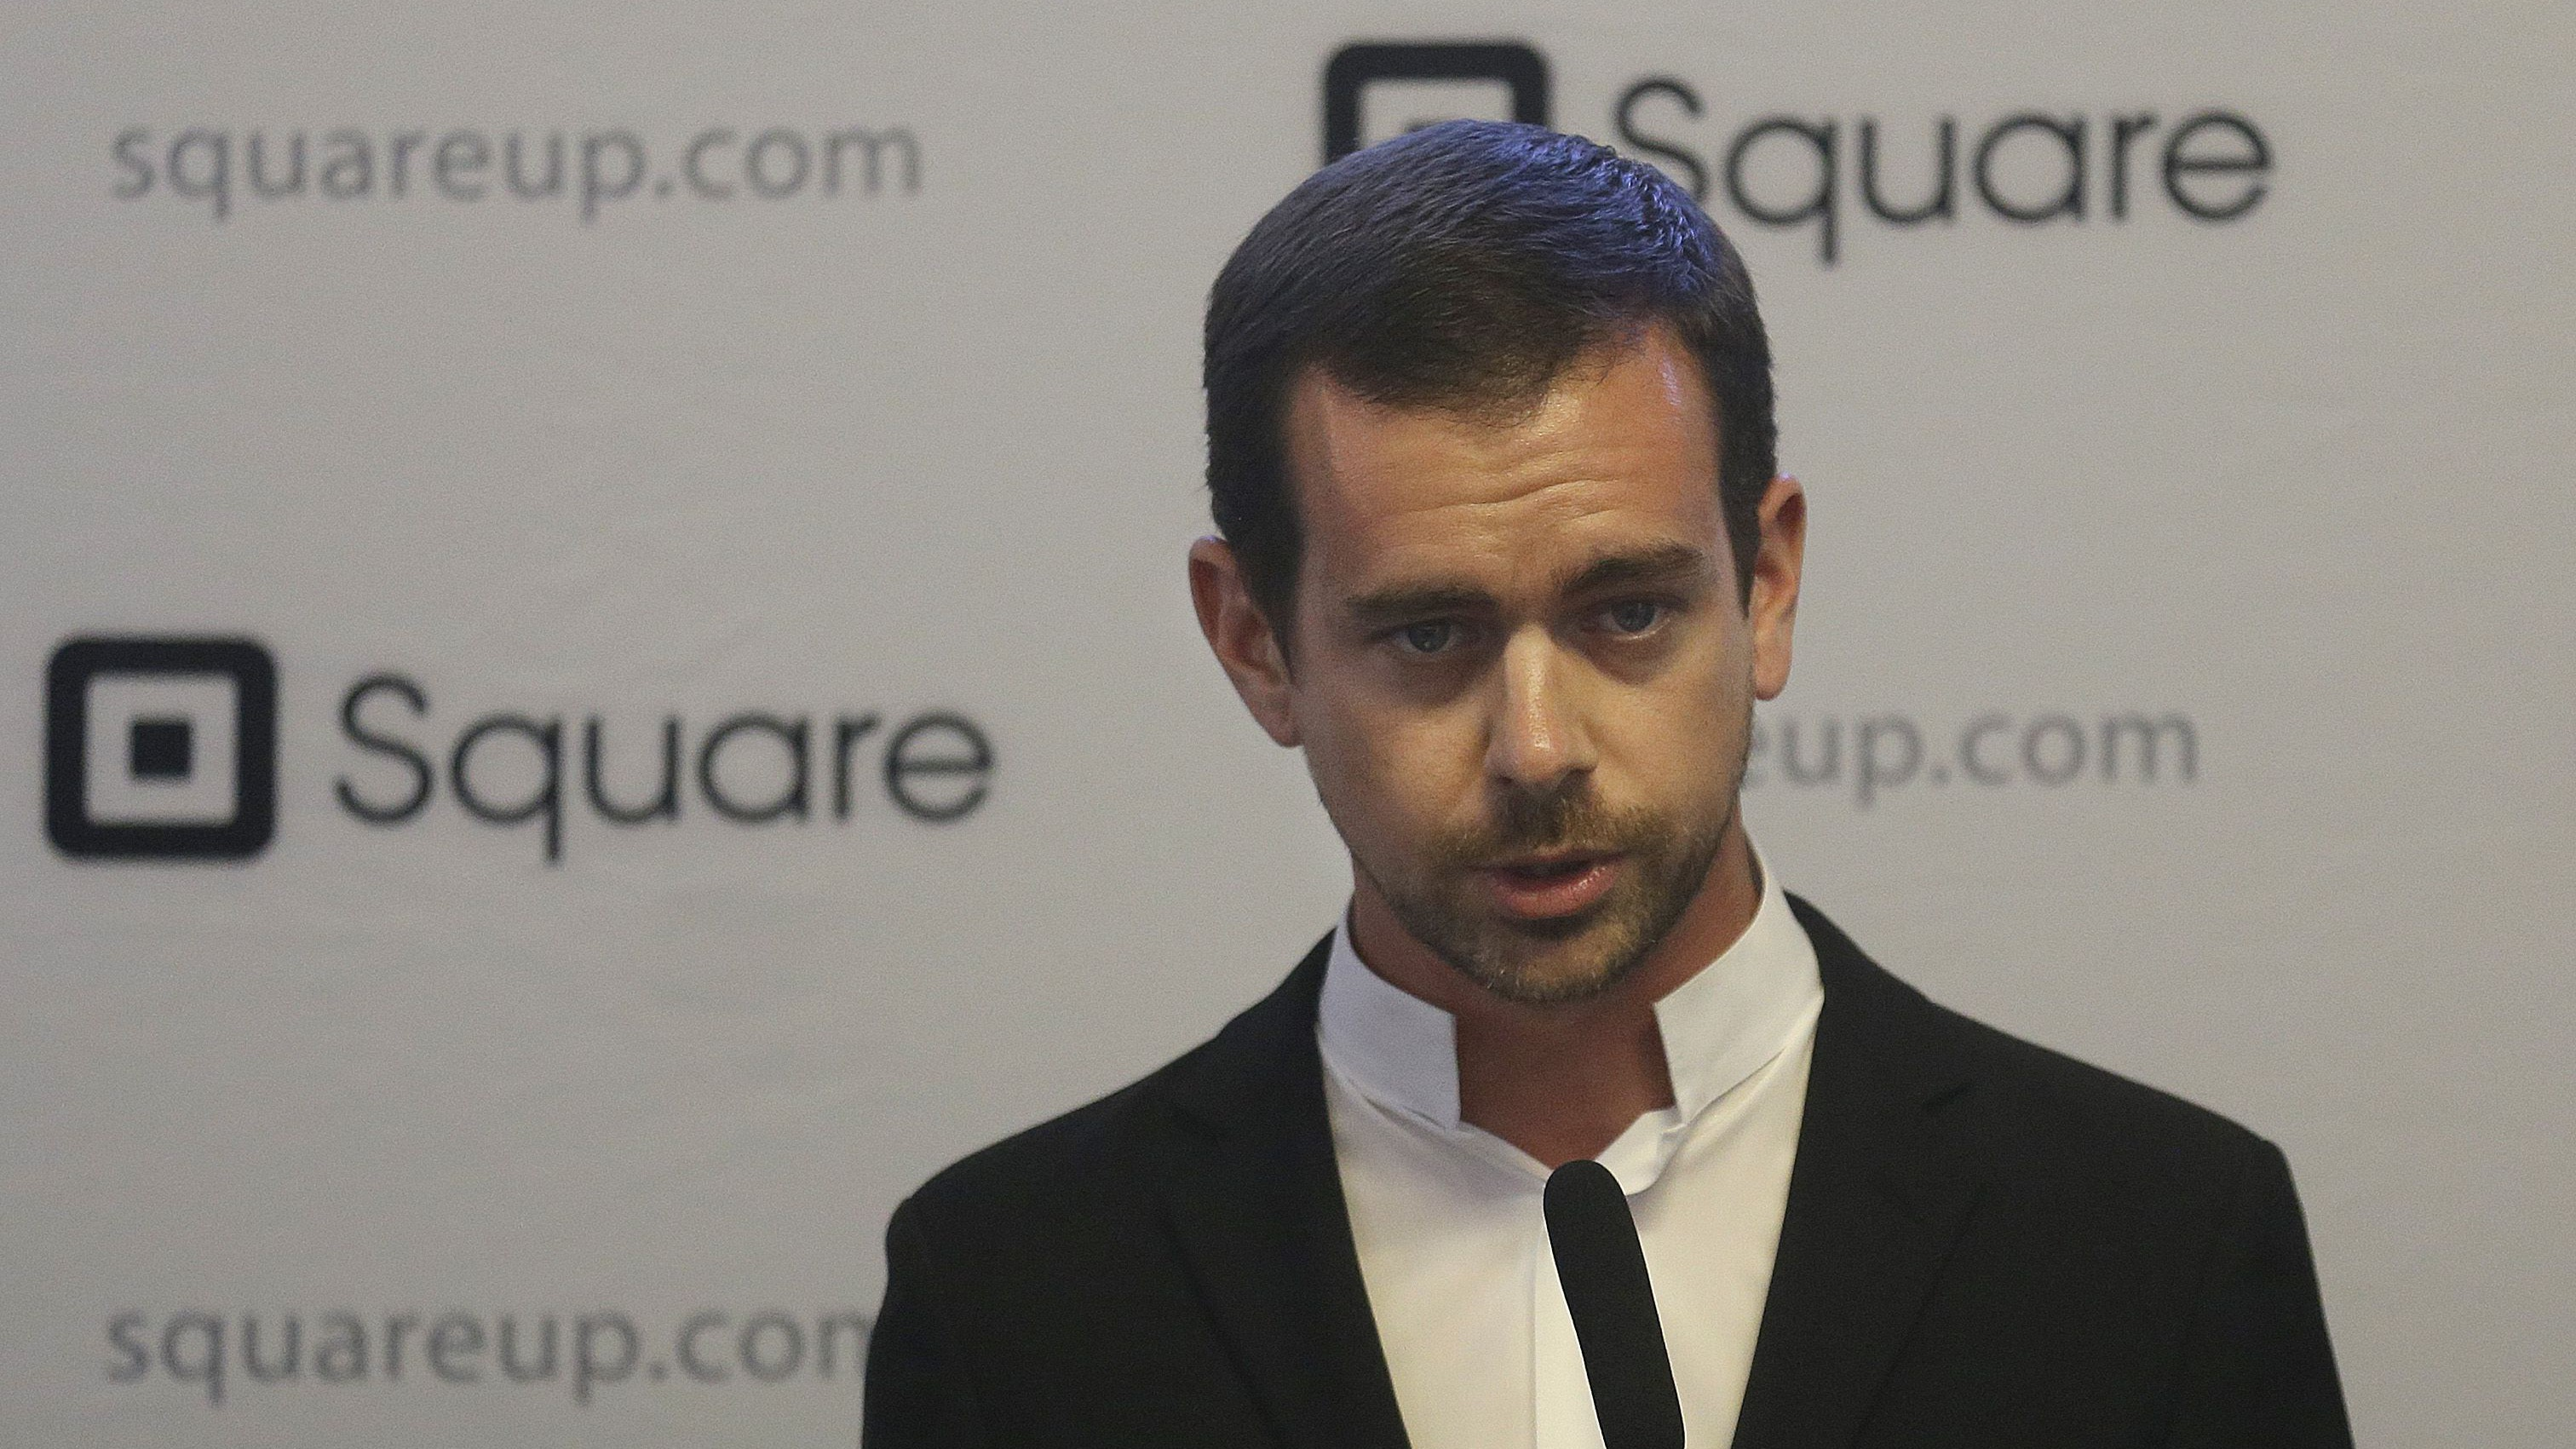 Square CEO Jack Dorsey speaks at a news conference in San Francisco in 2013